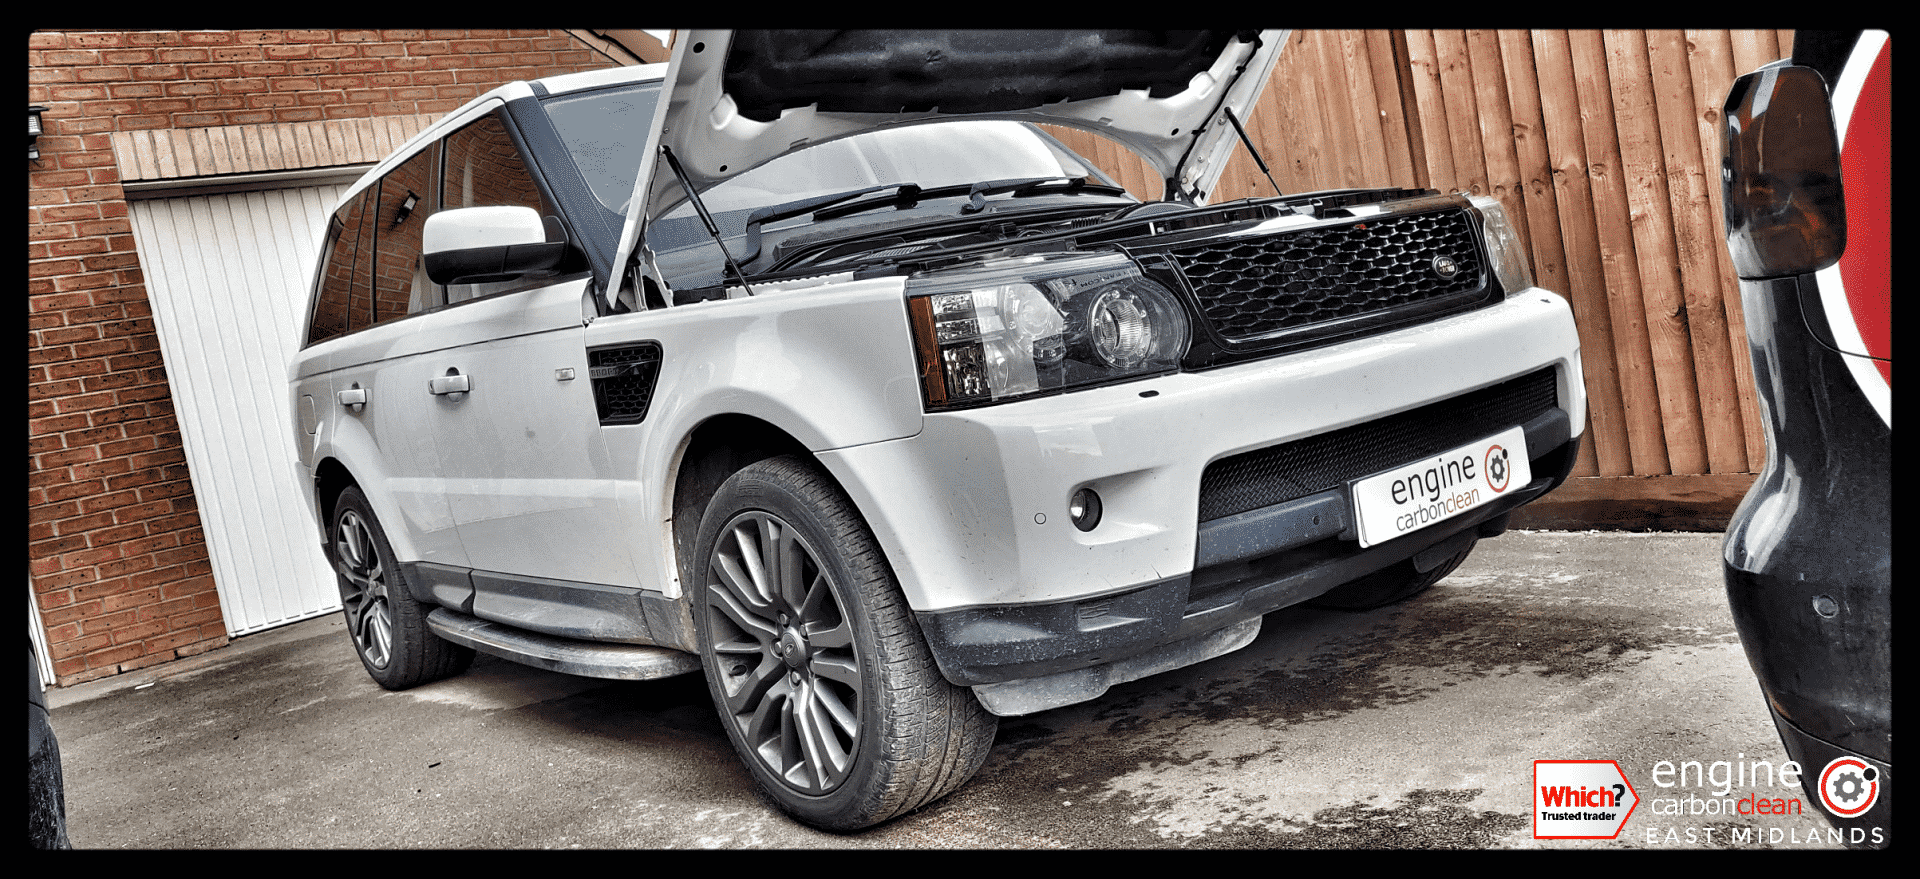 Power loss and/or black smoke? Diagnostic consultation on a Range Rover Sport (2010 - 70,384 miles)